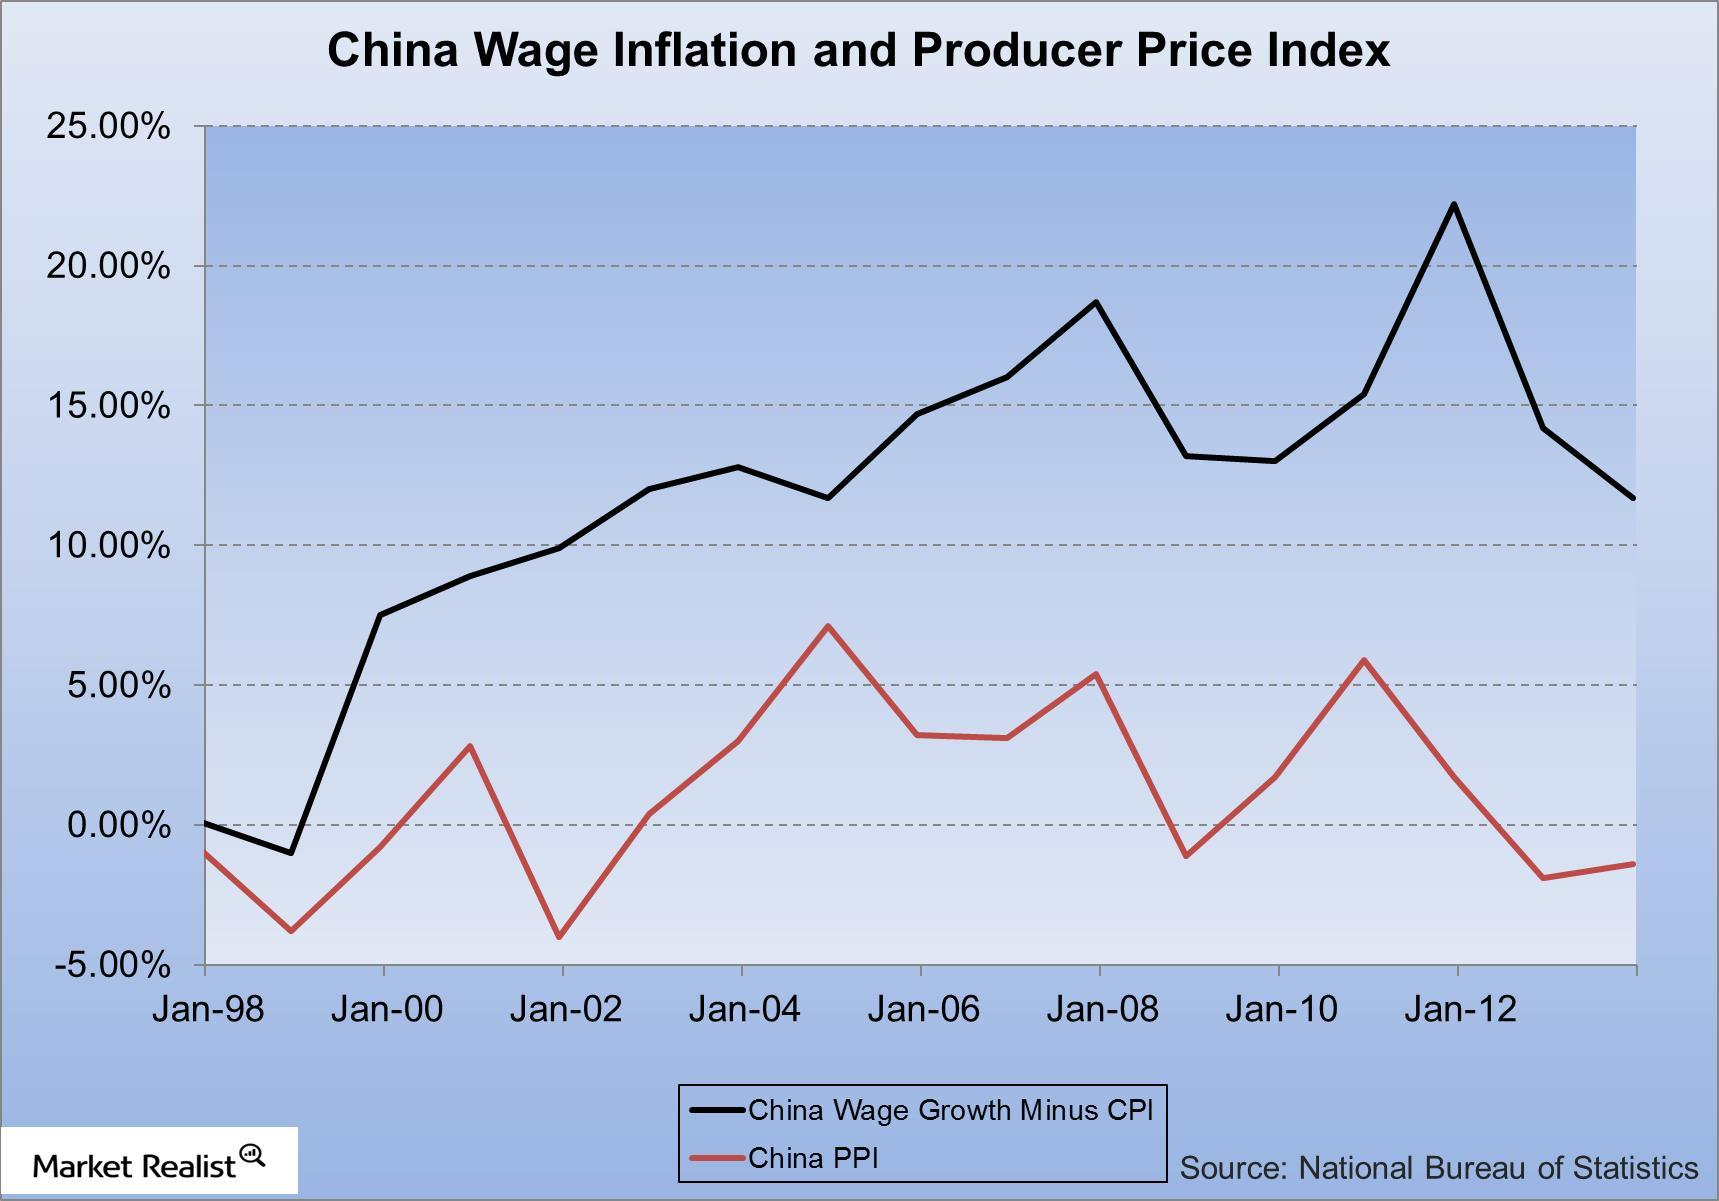 uploads///China Wage Inflation and Producer Price Index